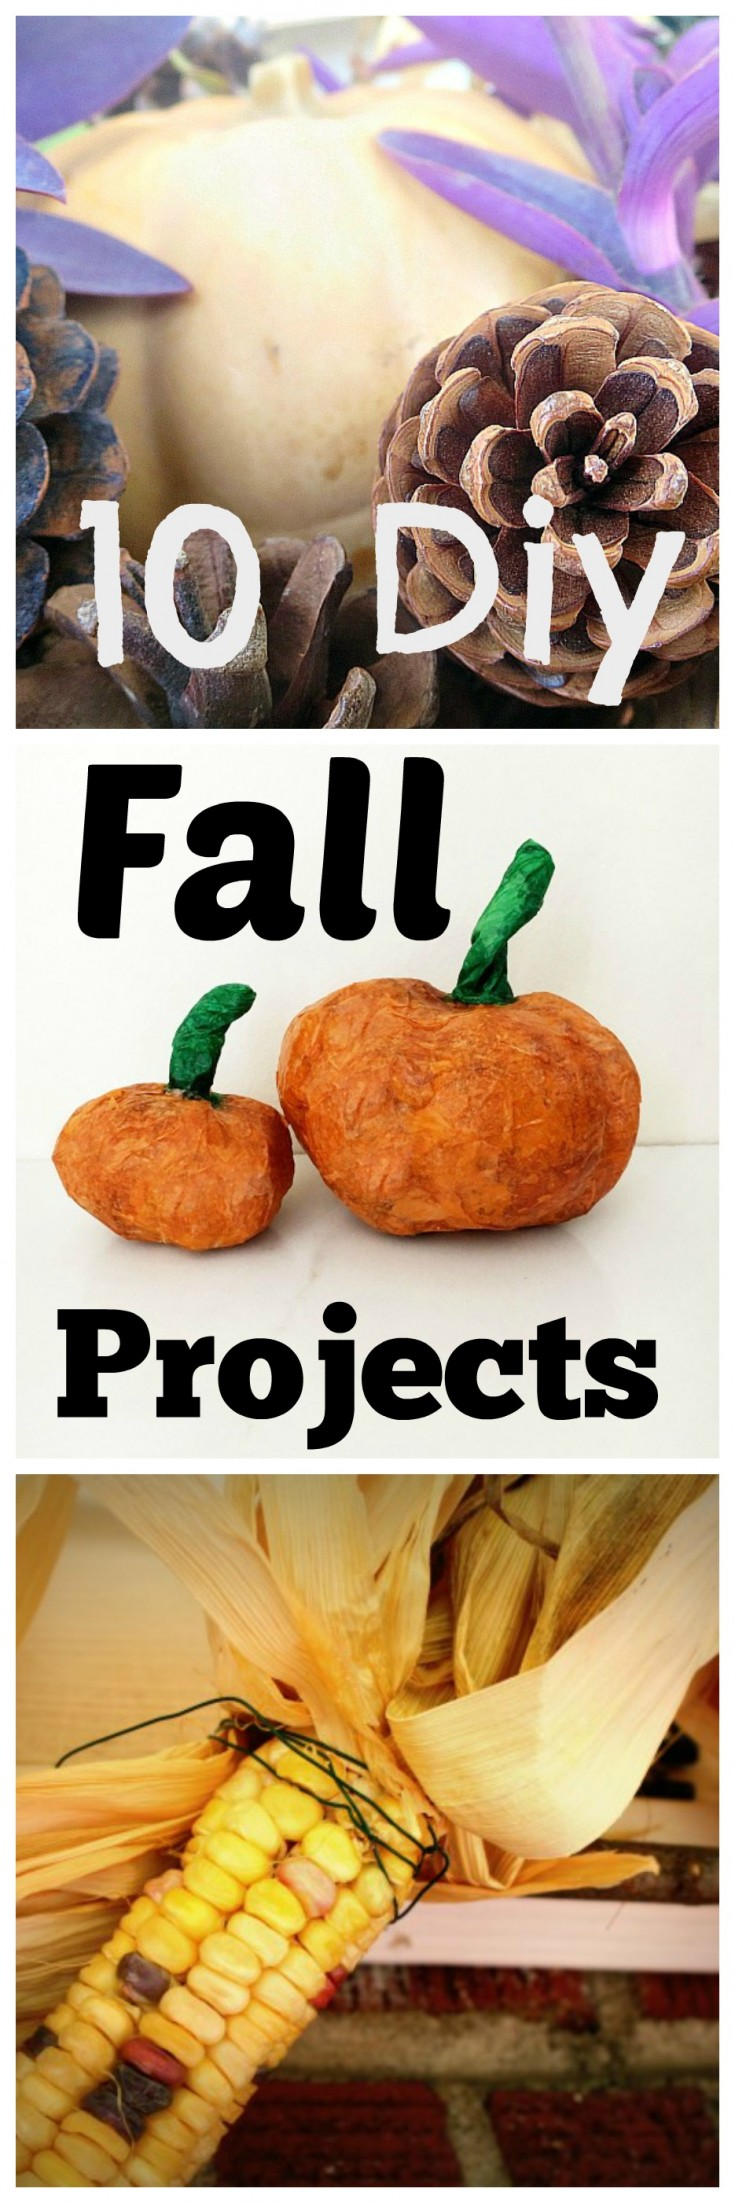 10 fall projects